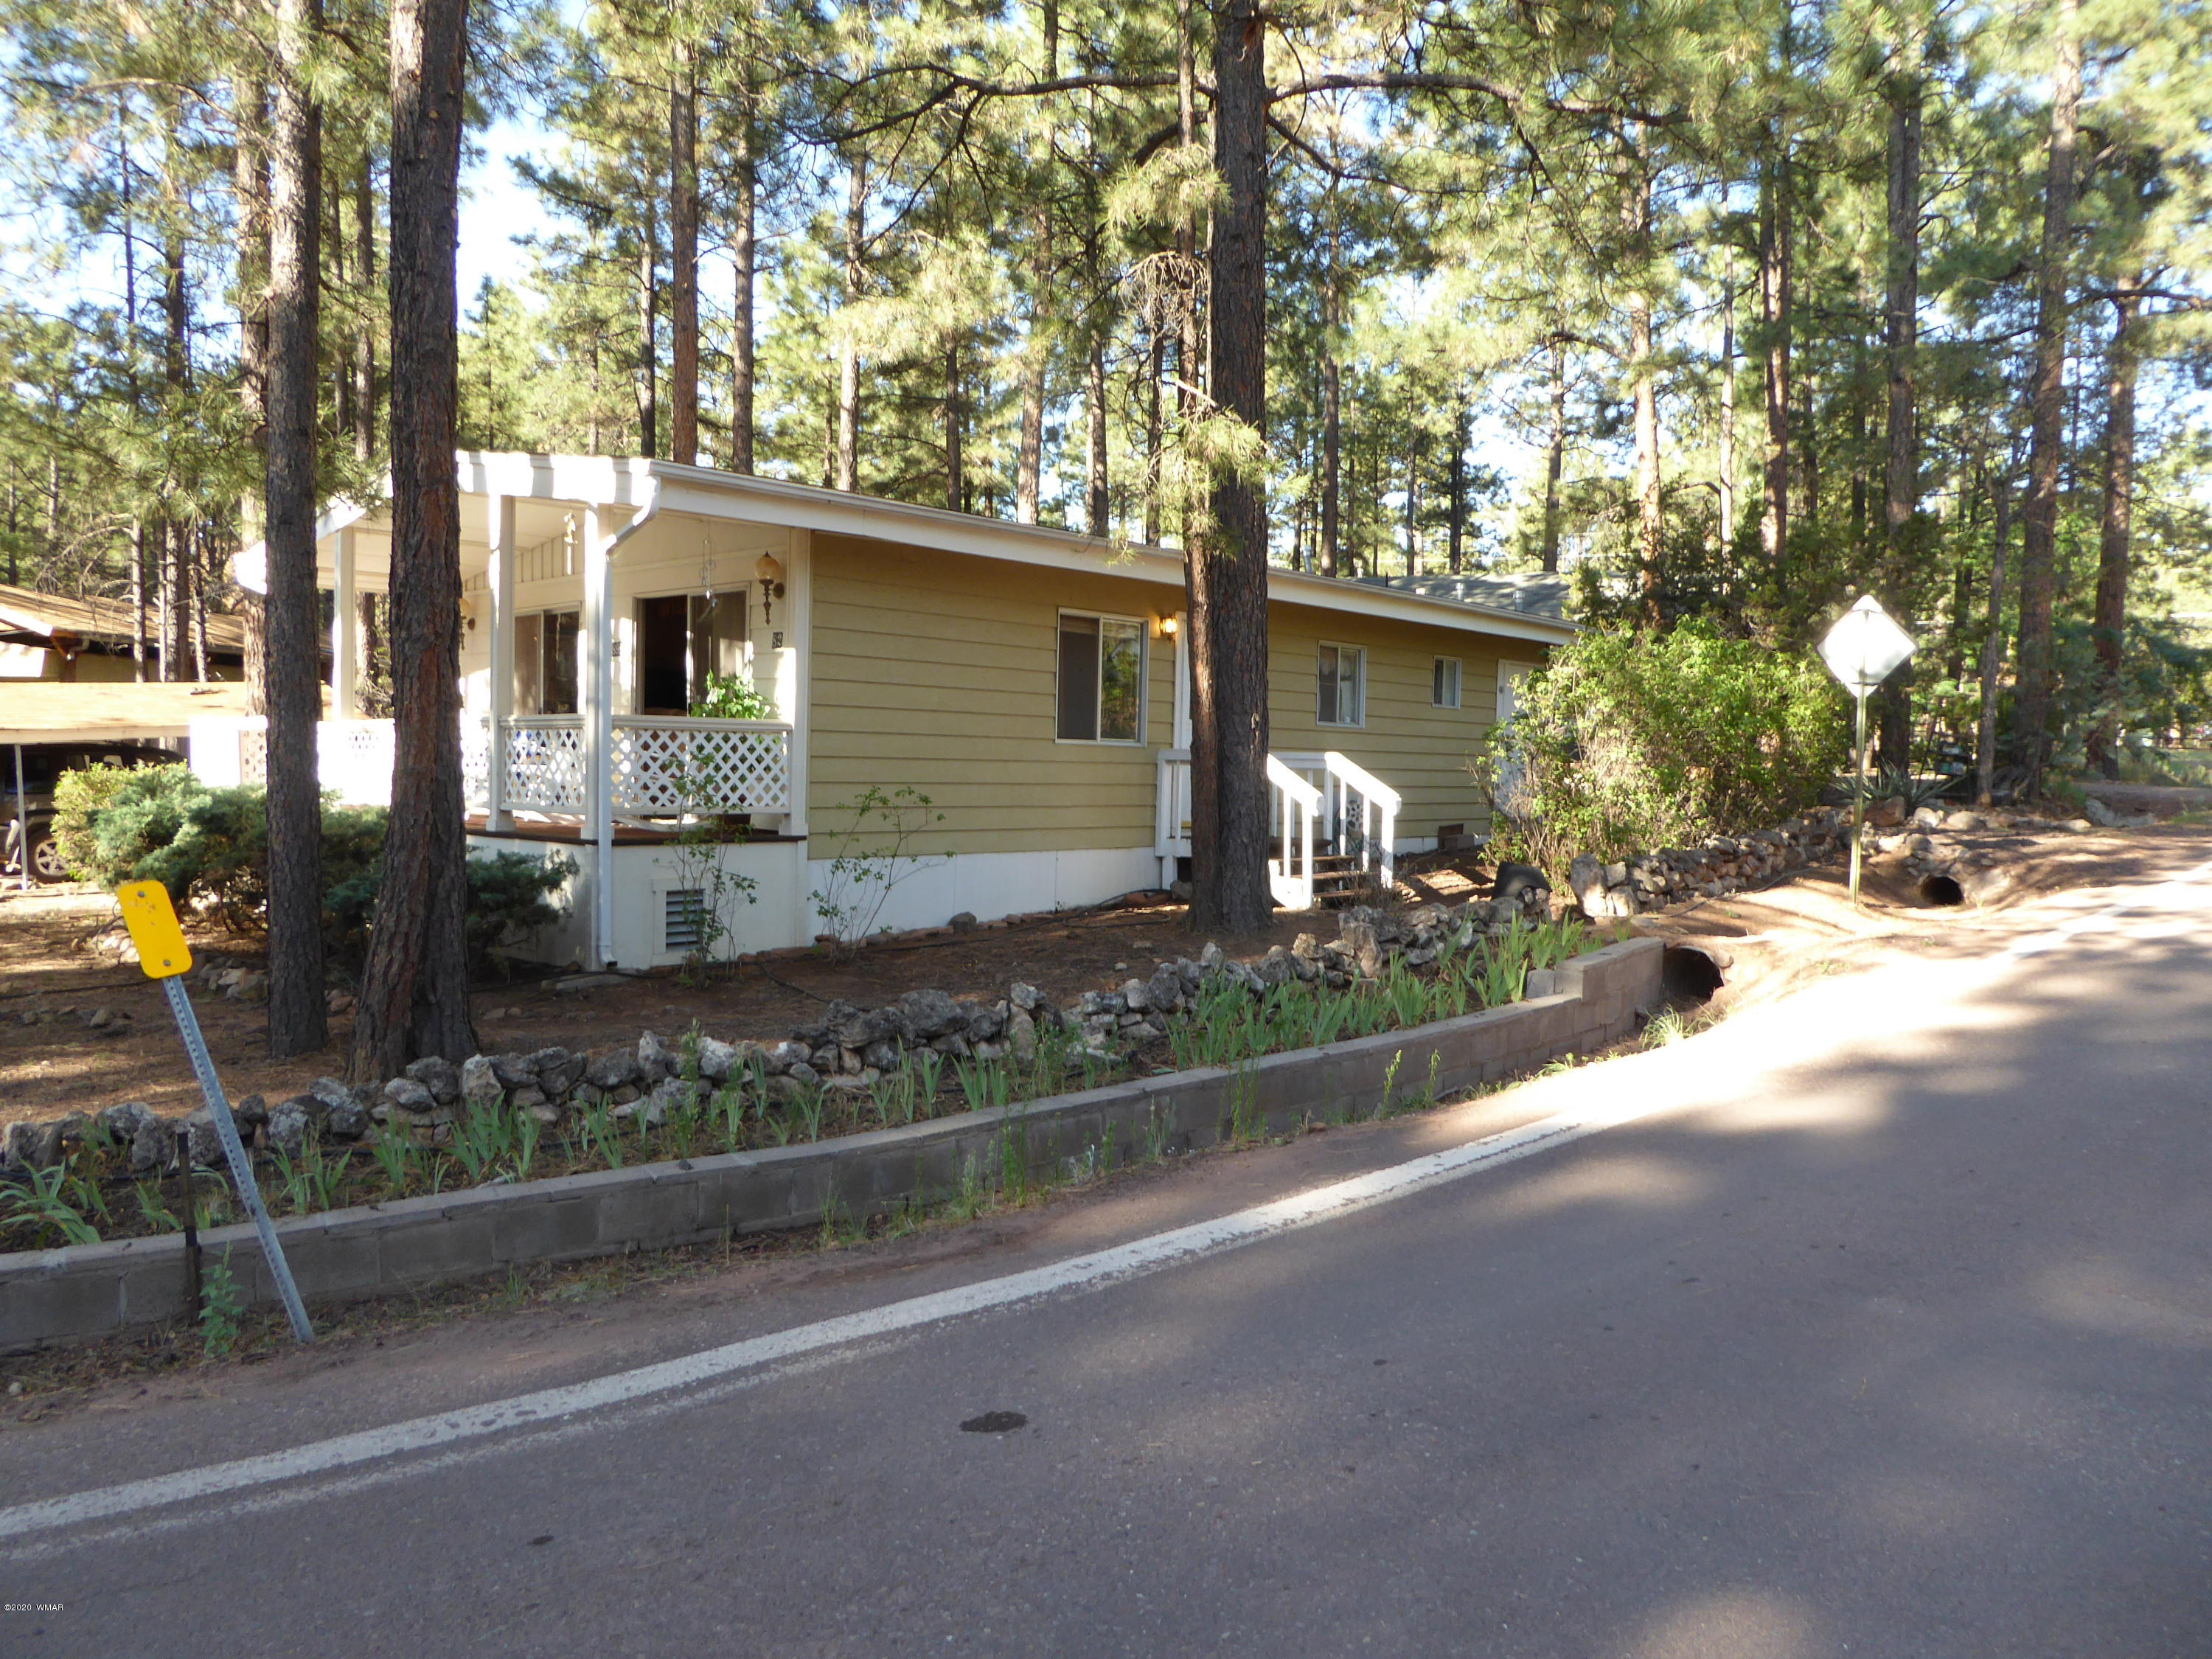 Nice double wide manufactured home nestled on a beautiful treed lot. Enjoy the Ponderosa pines in the front yard from the covered deck. This is a great ''pack & play home,enjoy all the out door spaces. The electric fire place in the living room has only been used one season. This home is move in ready and the furniture stays with the property. It has a chain link fence wrapping around the backyard with storage/workshop at back of property. Home is covered with home warranty which is transferable. The sellers will pay to extend the warranty for one year or buyers choice. not to exceed $500,00